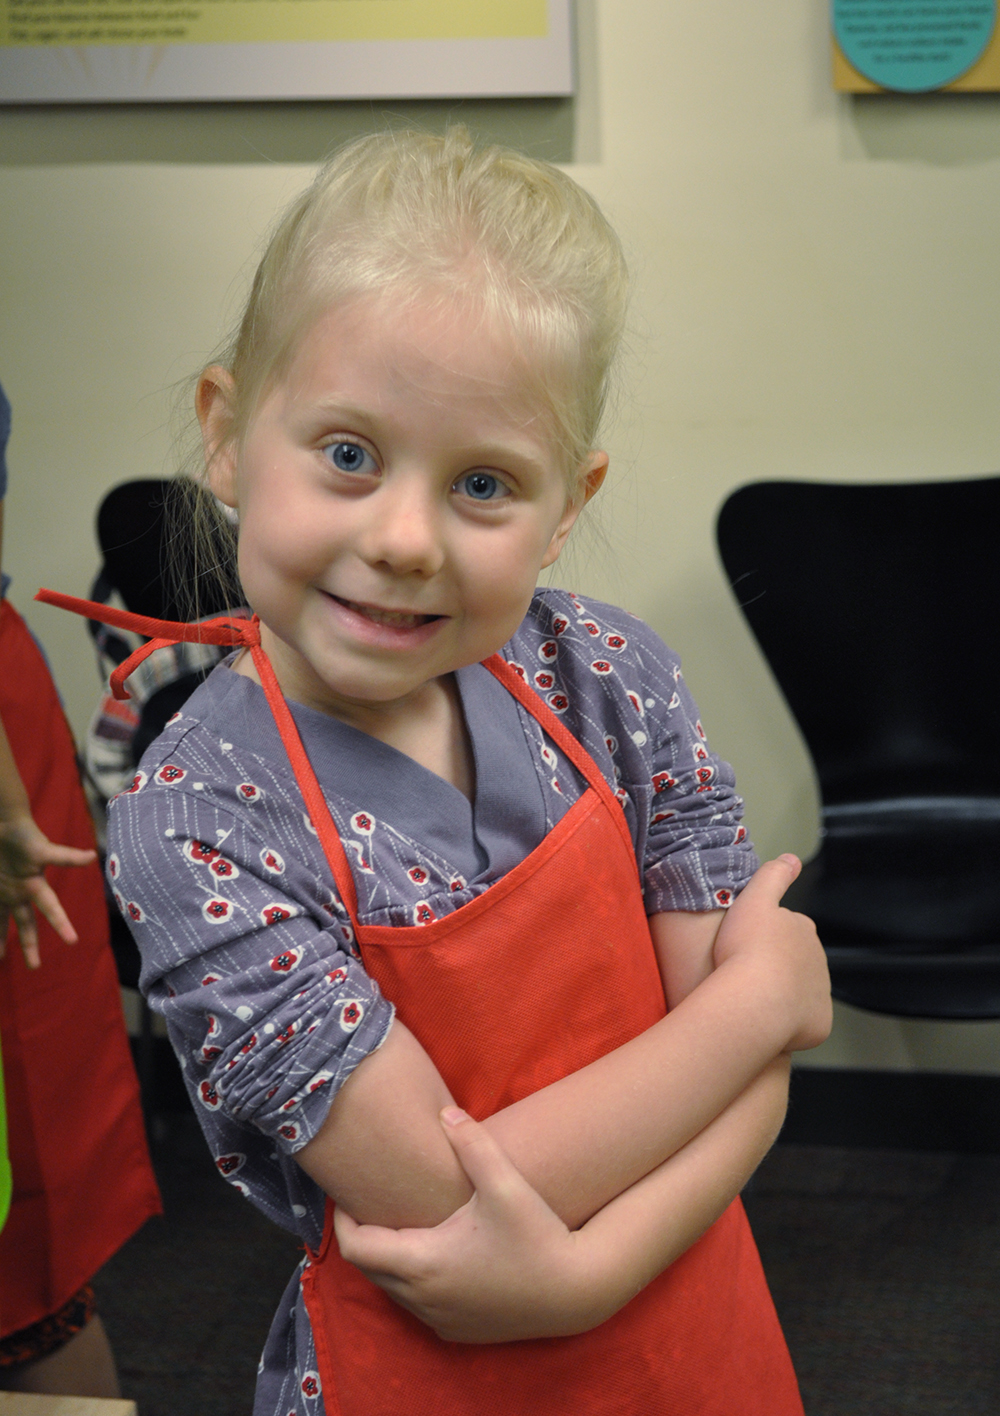 Arizona Adventures: the Toddler Test Kitchen at the Halle Heart Children's Museum in Tempe is a fun, inexpensive way for kids between ages 2 and 6 to learn about cooking, nutrition, and more